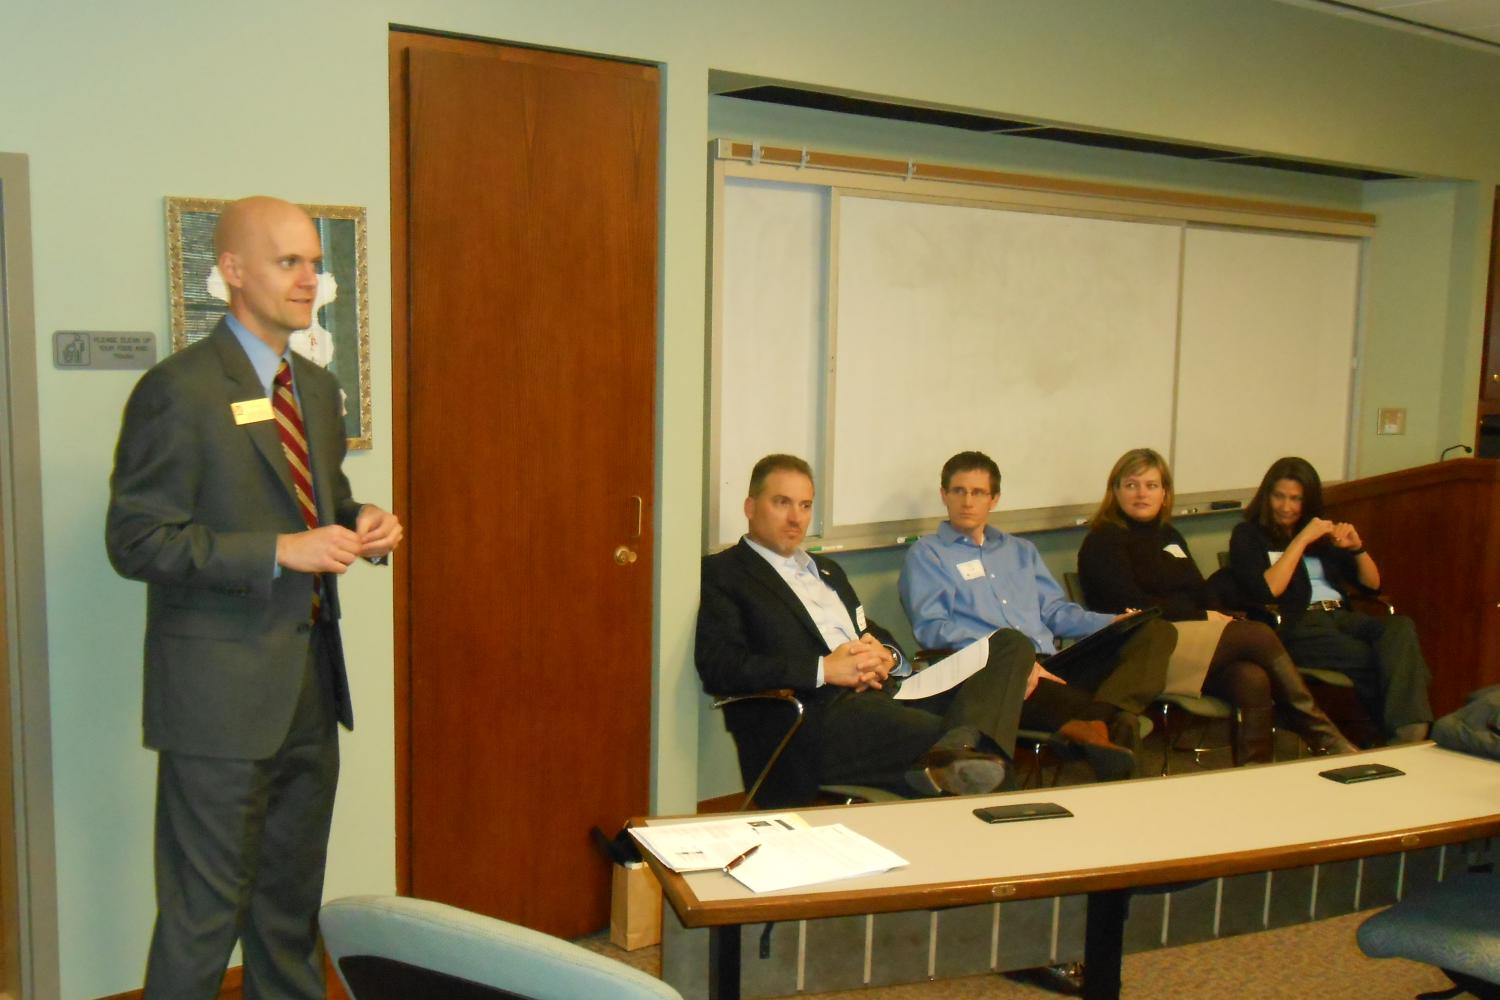 Todd Rogers moderates as Shawn Cheadle (Lockheed Martin Space Systems), Tim Kraft (Boulder Brands), Linda McConnon (Corporate Express), and Erica Tarpey (Ireland Stapleton) speak at the Transactional Law Panel.